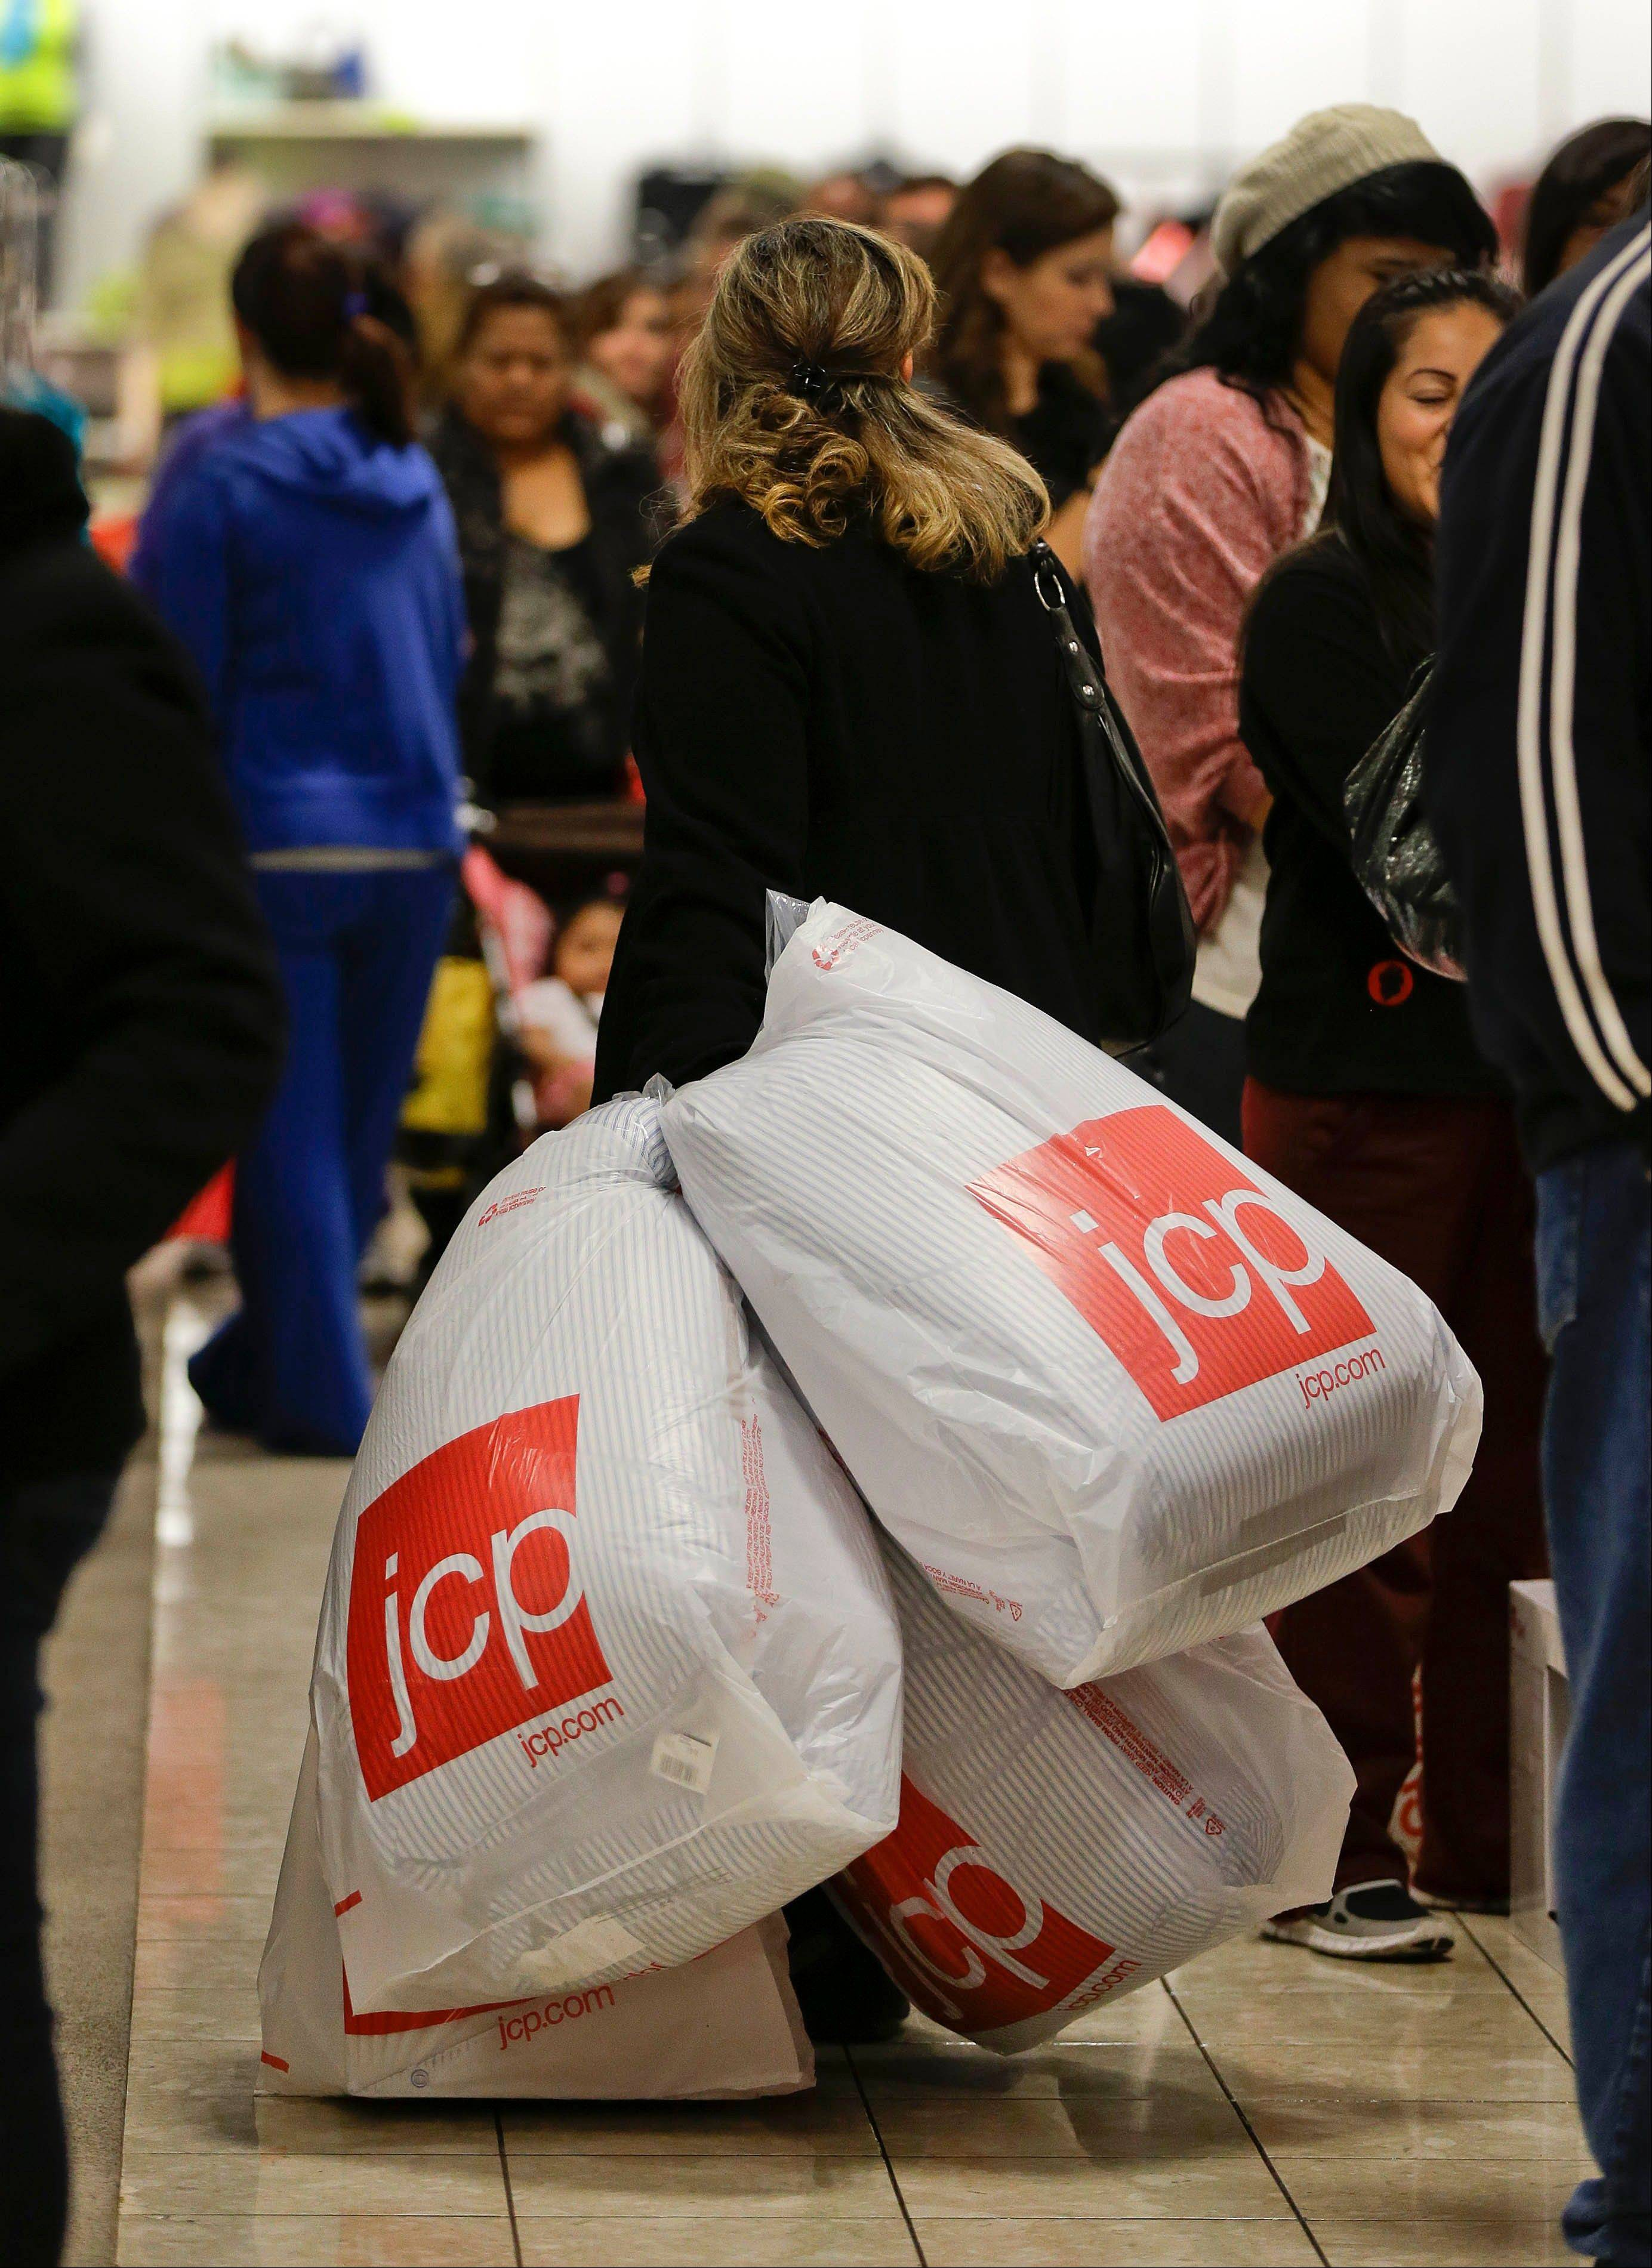 A shopper drags her purchases past a line of customers waiting to pay at a J.C. Penney store, in Las Vegas.